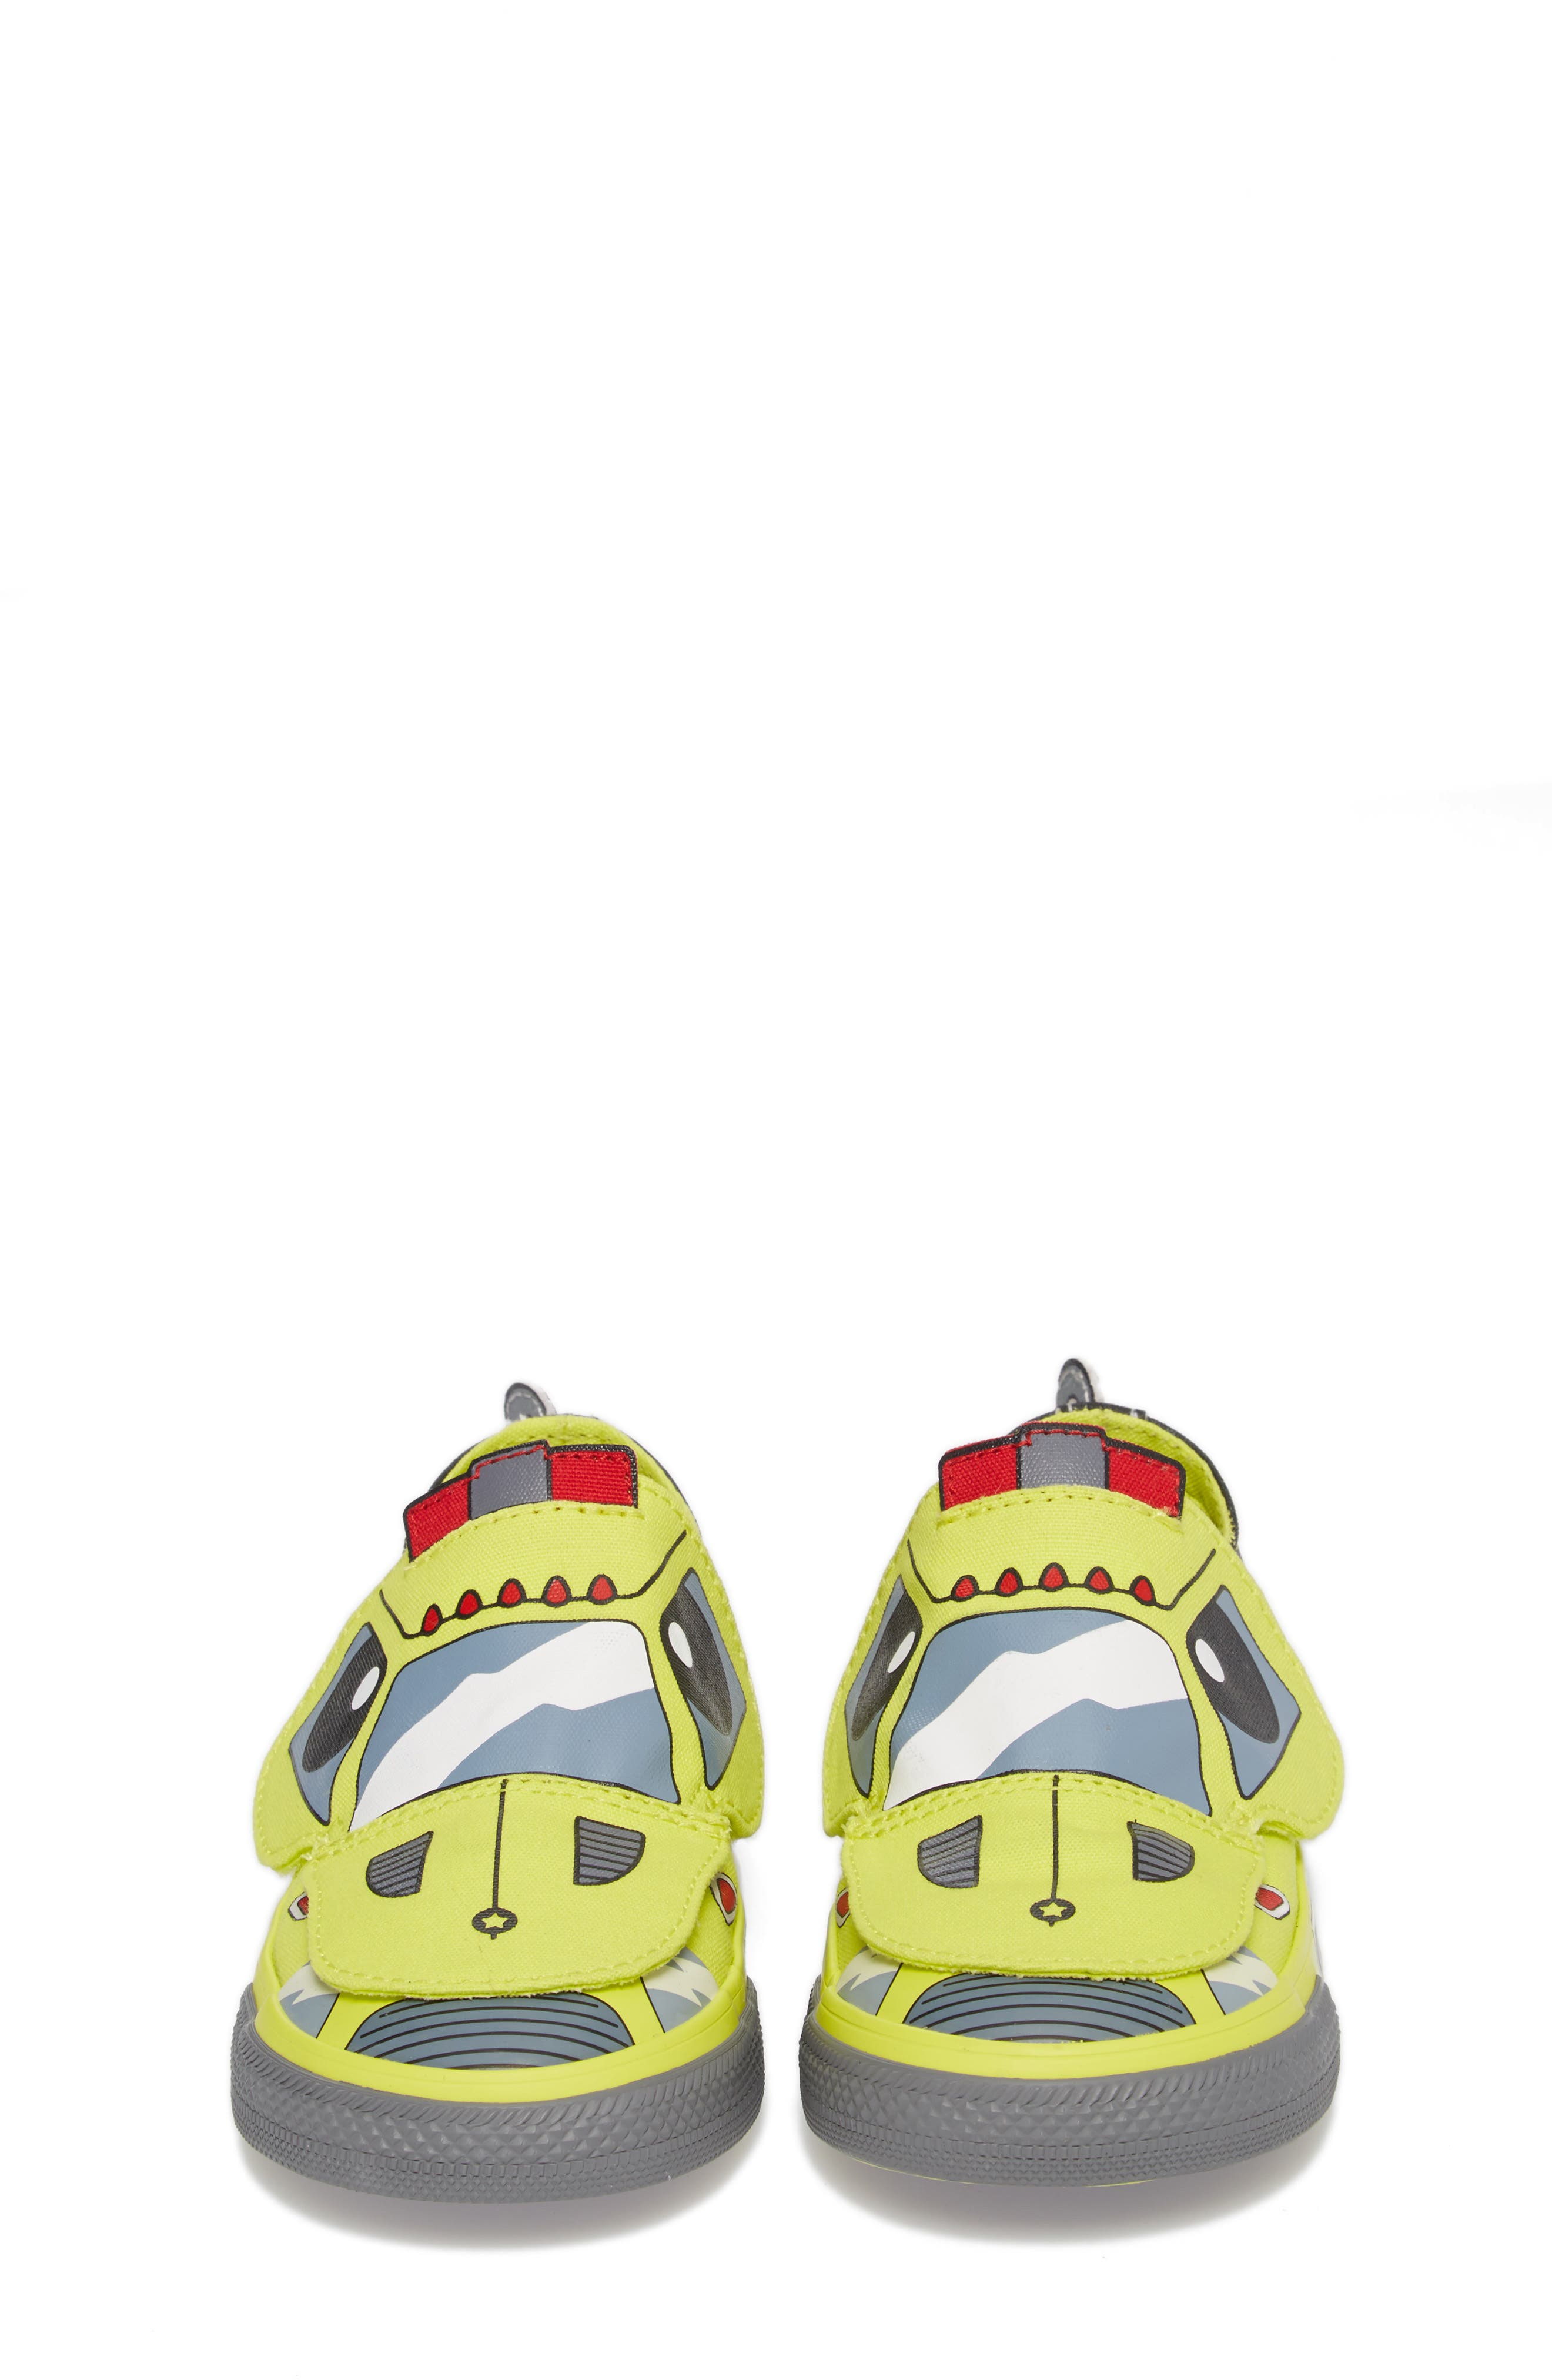 Alternate Image 4  - Converse Chuck Taylor® All Star® Creatures Slip-On Sneaker (Baby, Walker & Toddler)